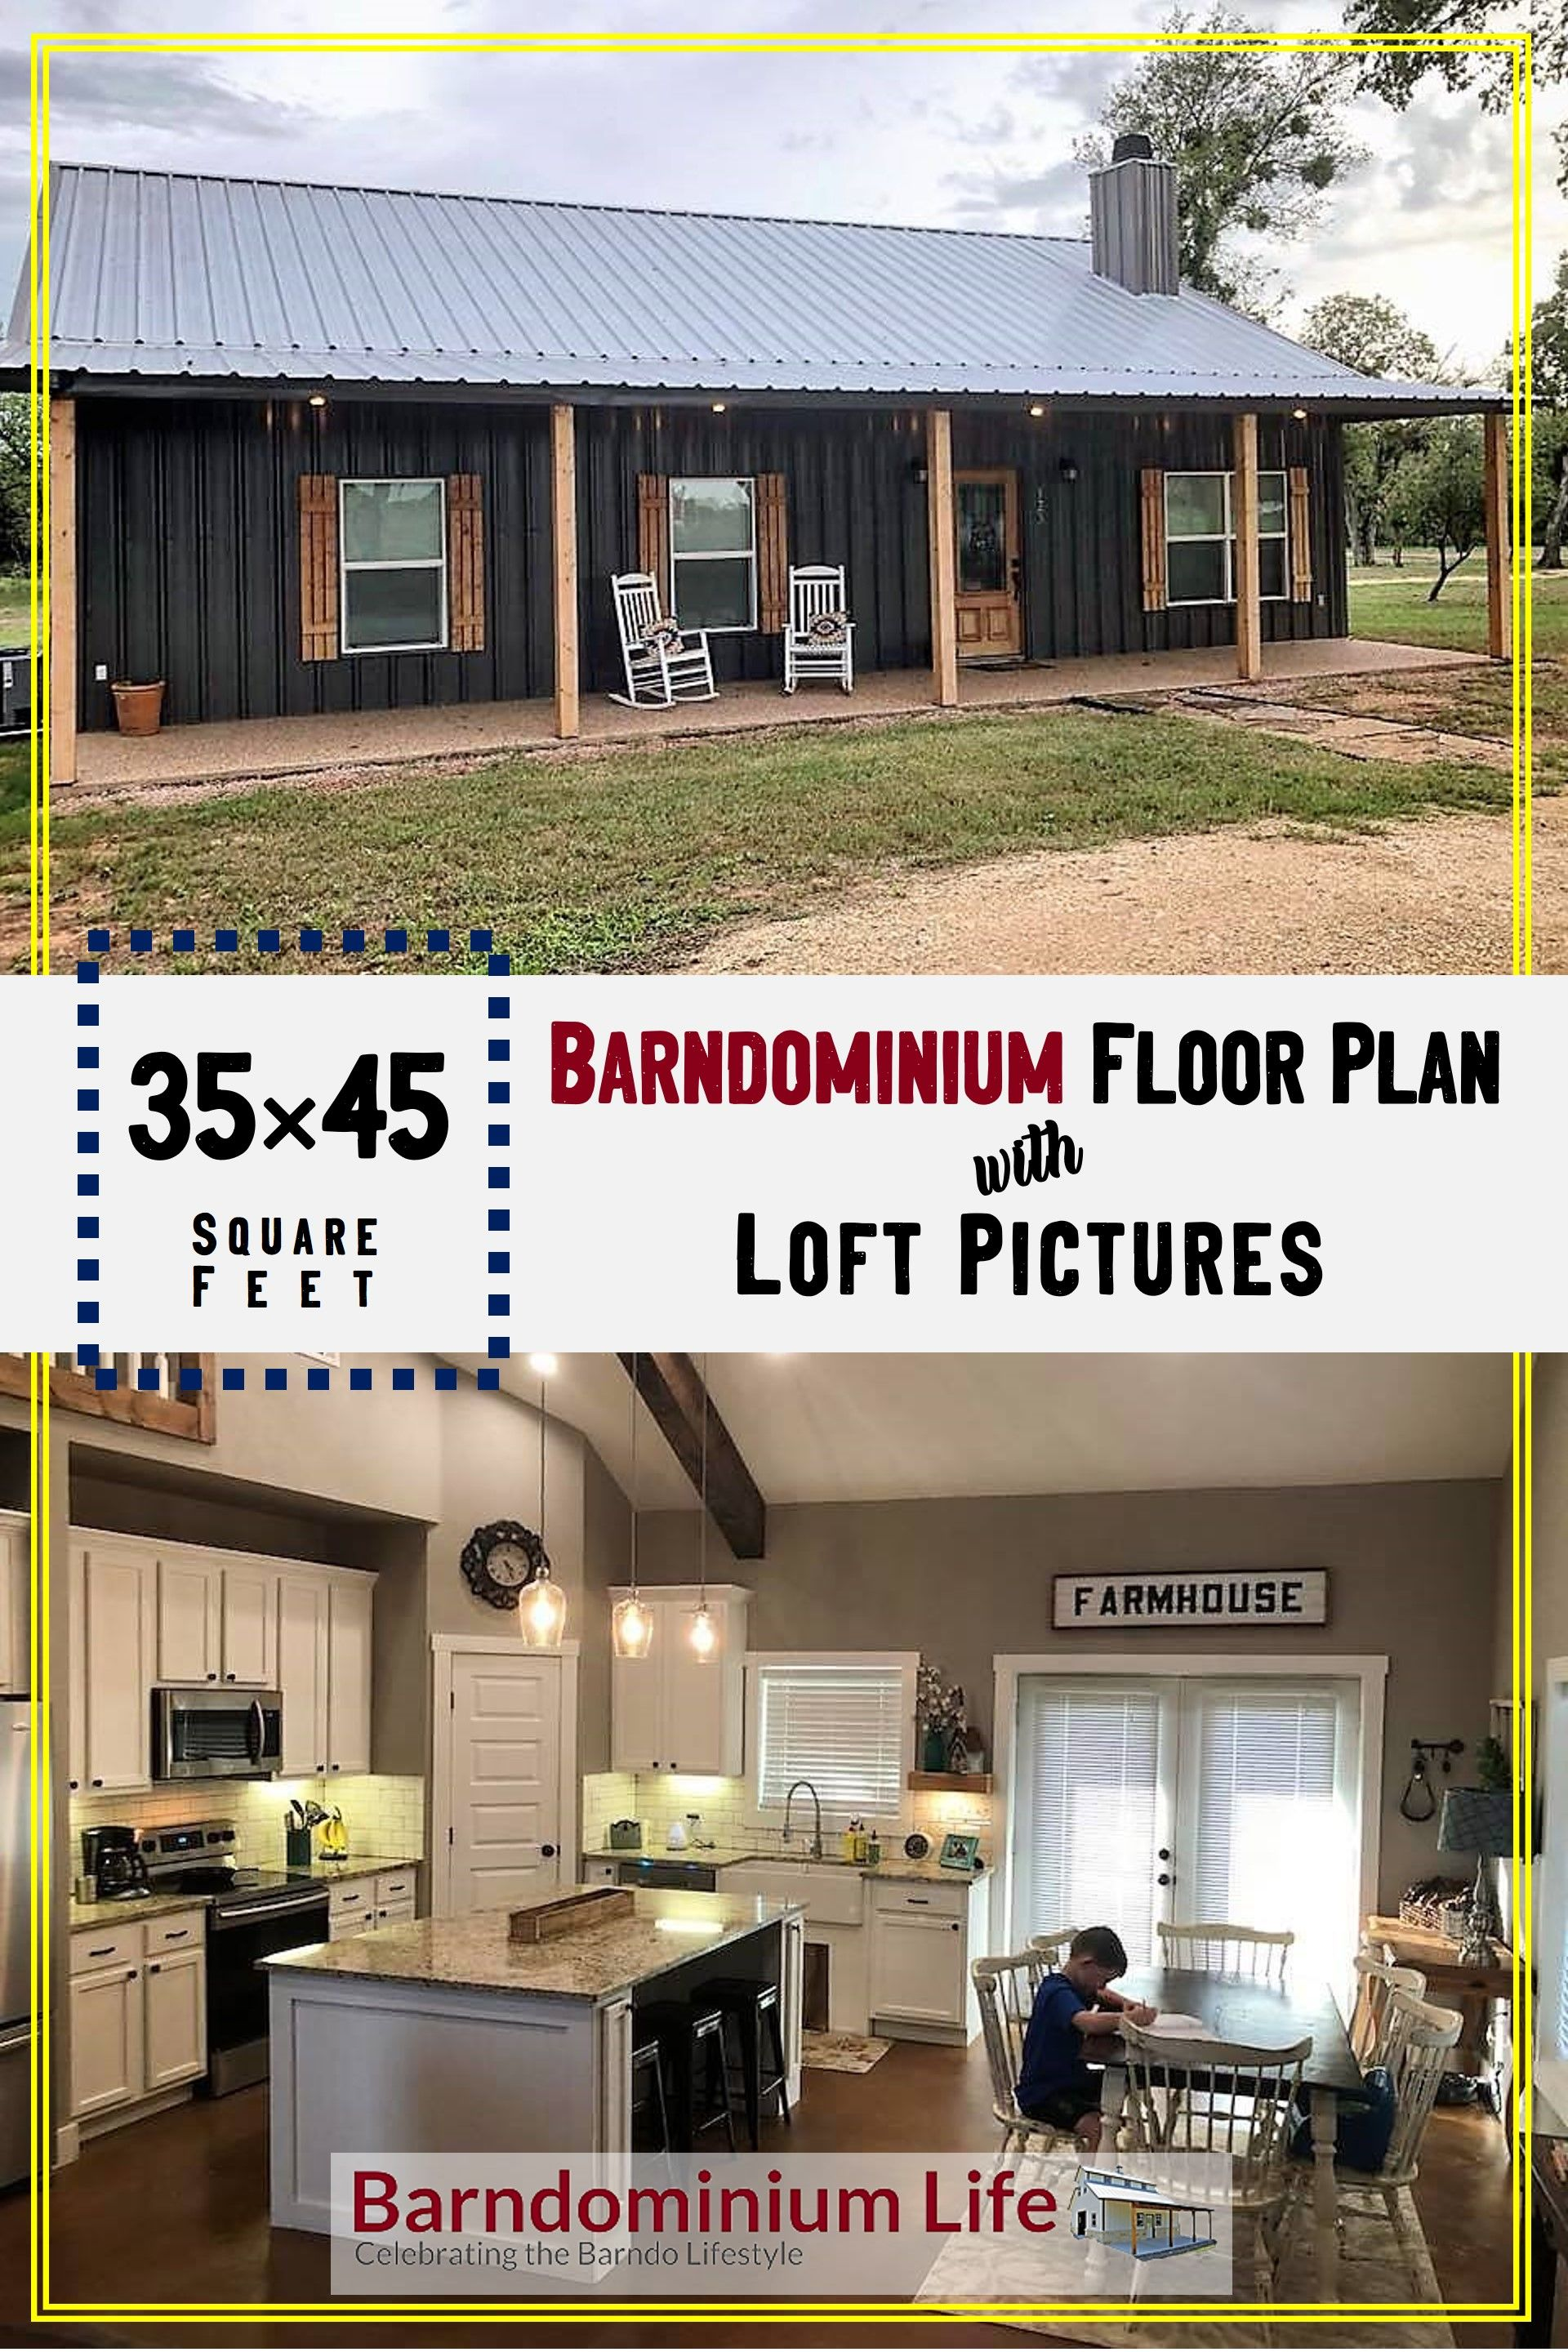 Barndominium Floor Plans with a Loft